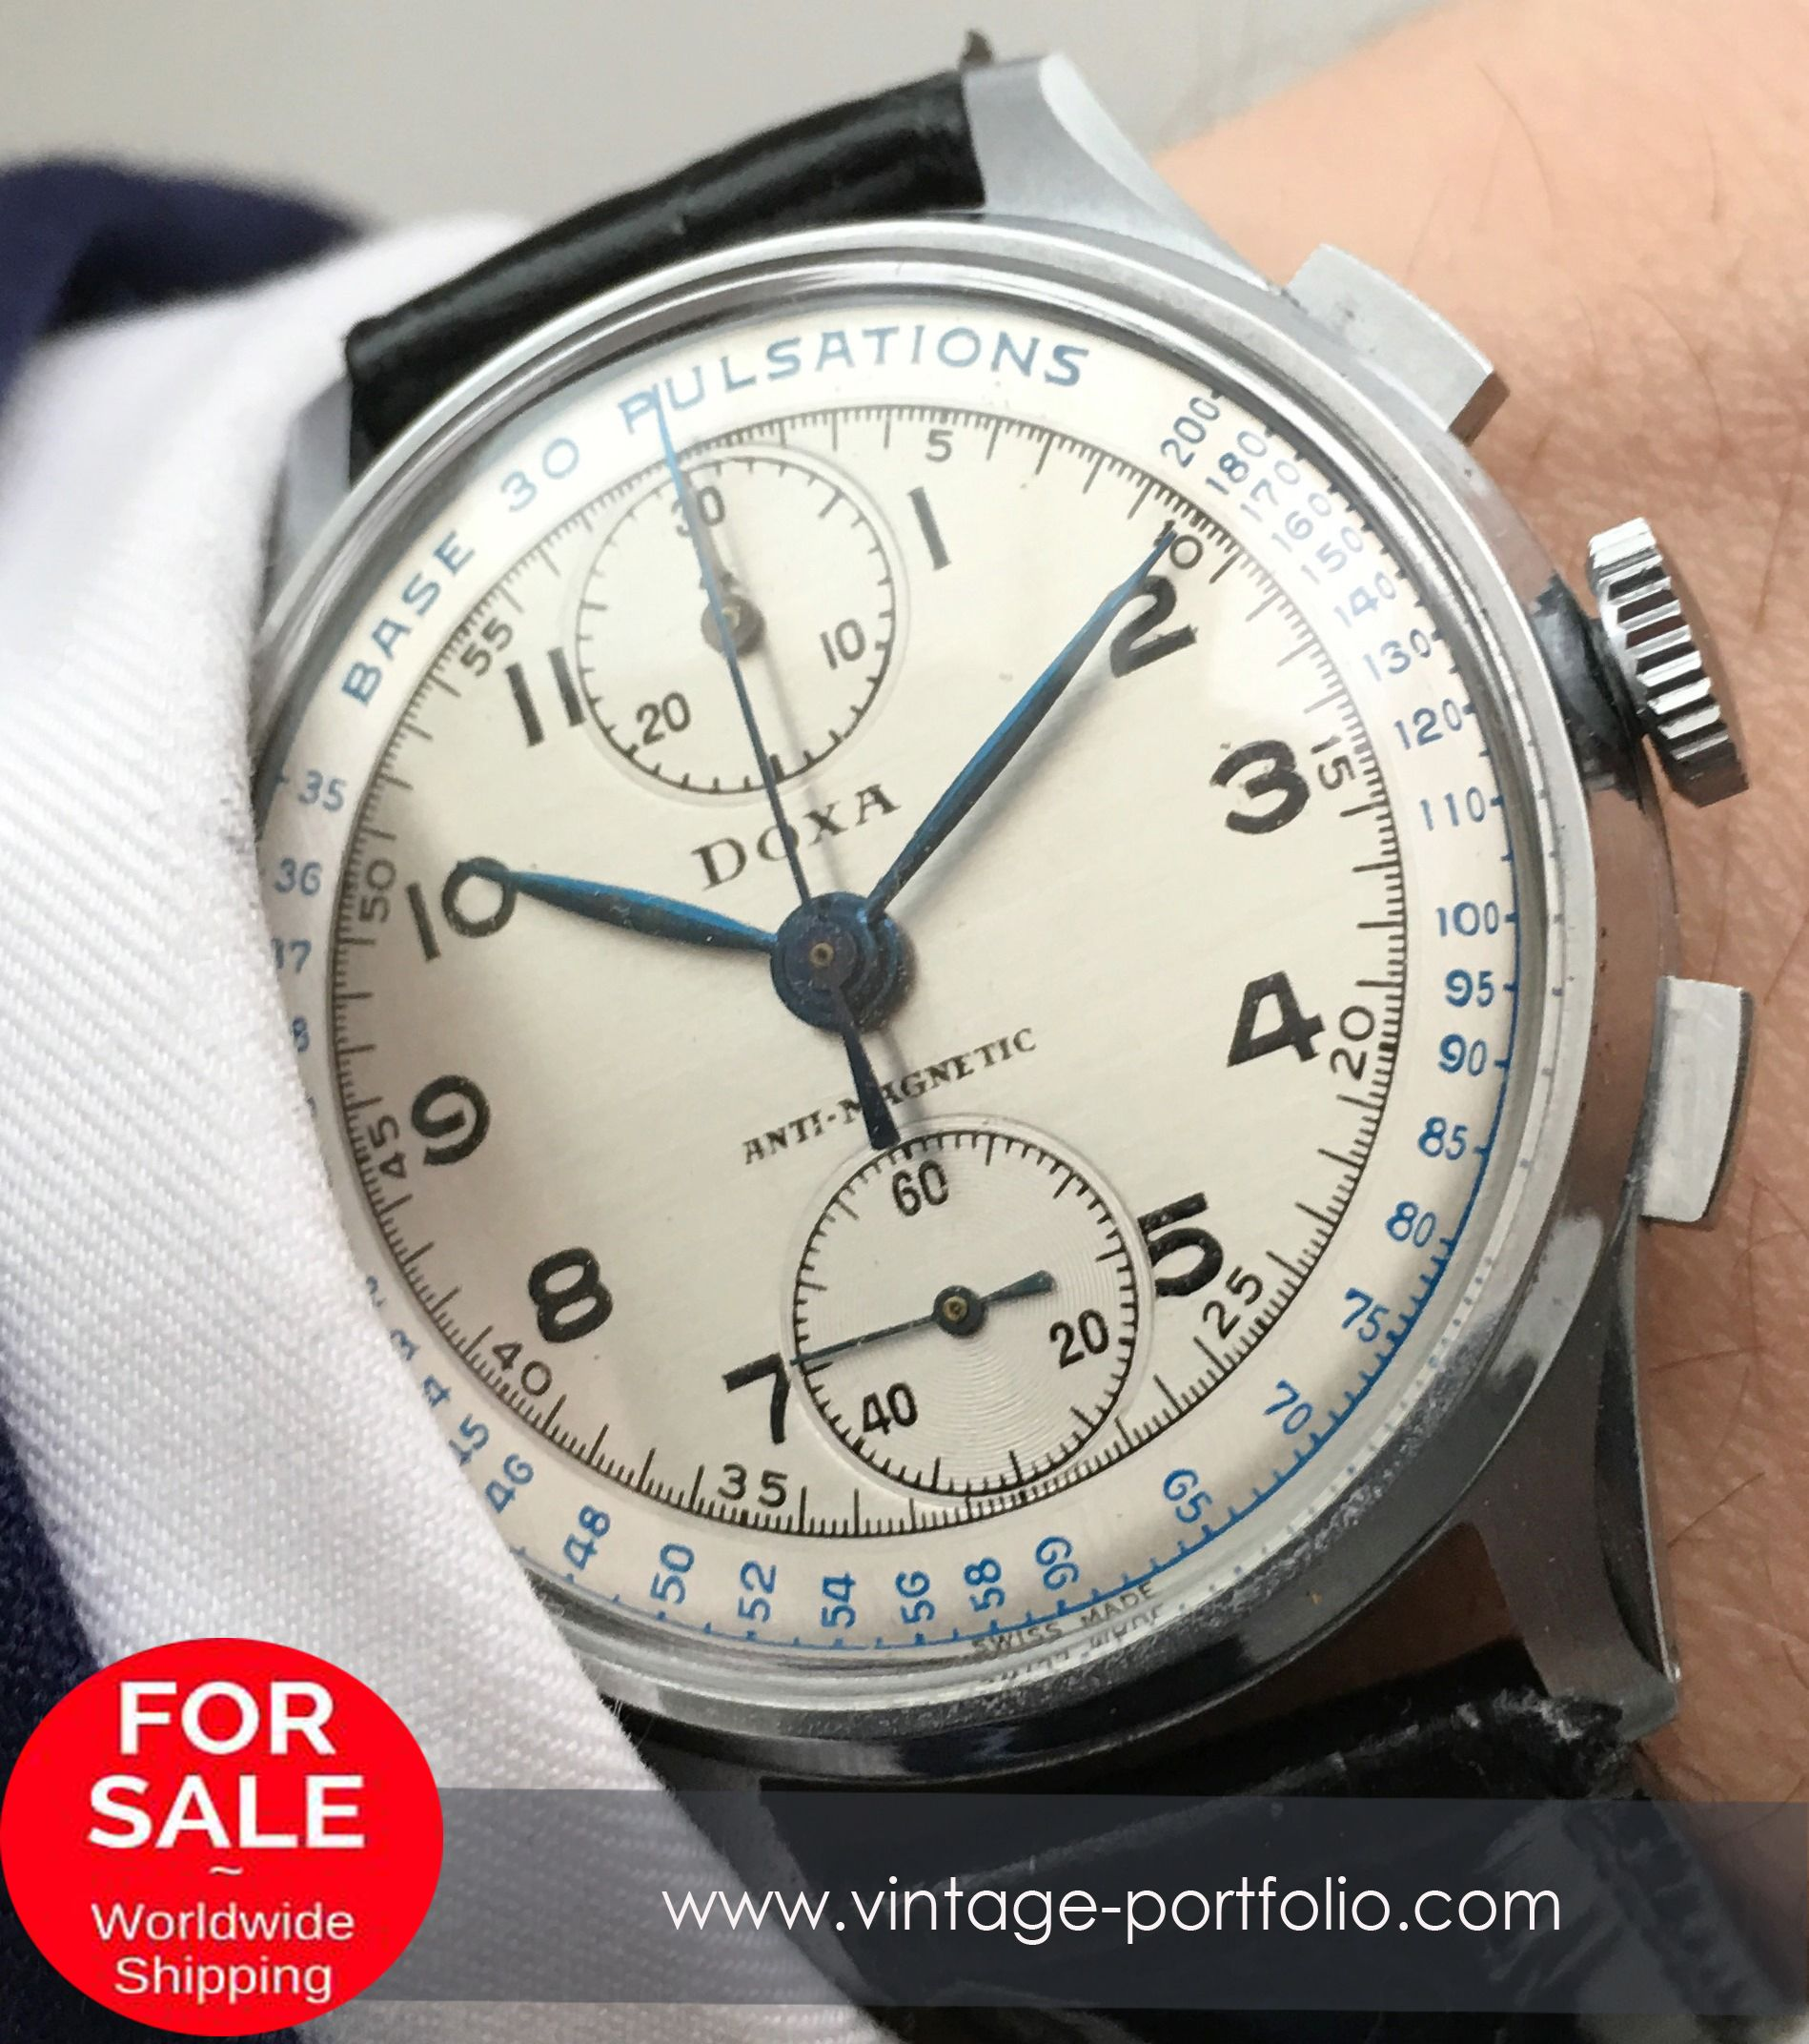 s nyr love patek minute watches collectors in christie and of reasons with features exceptional philippe simple on enamel re evening an automatic dial fine was platinum five offered wristwatch repeating rare extremely lot this